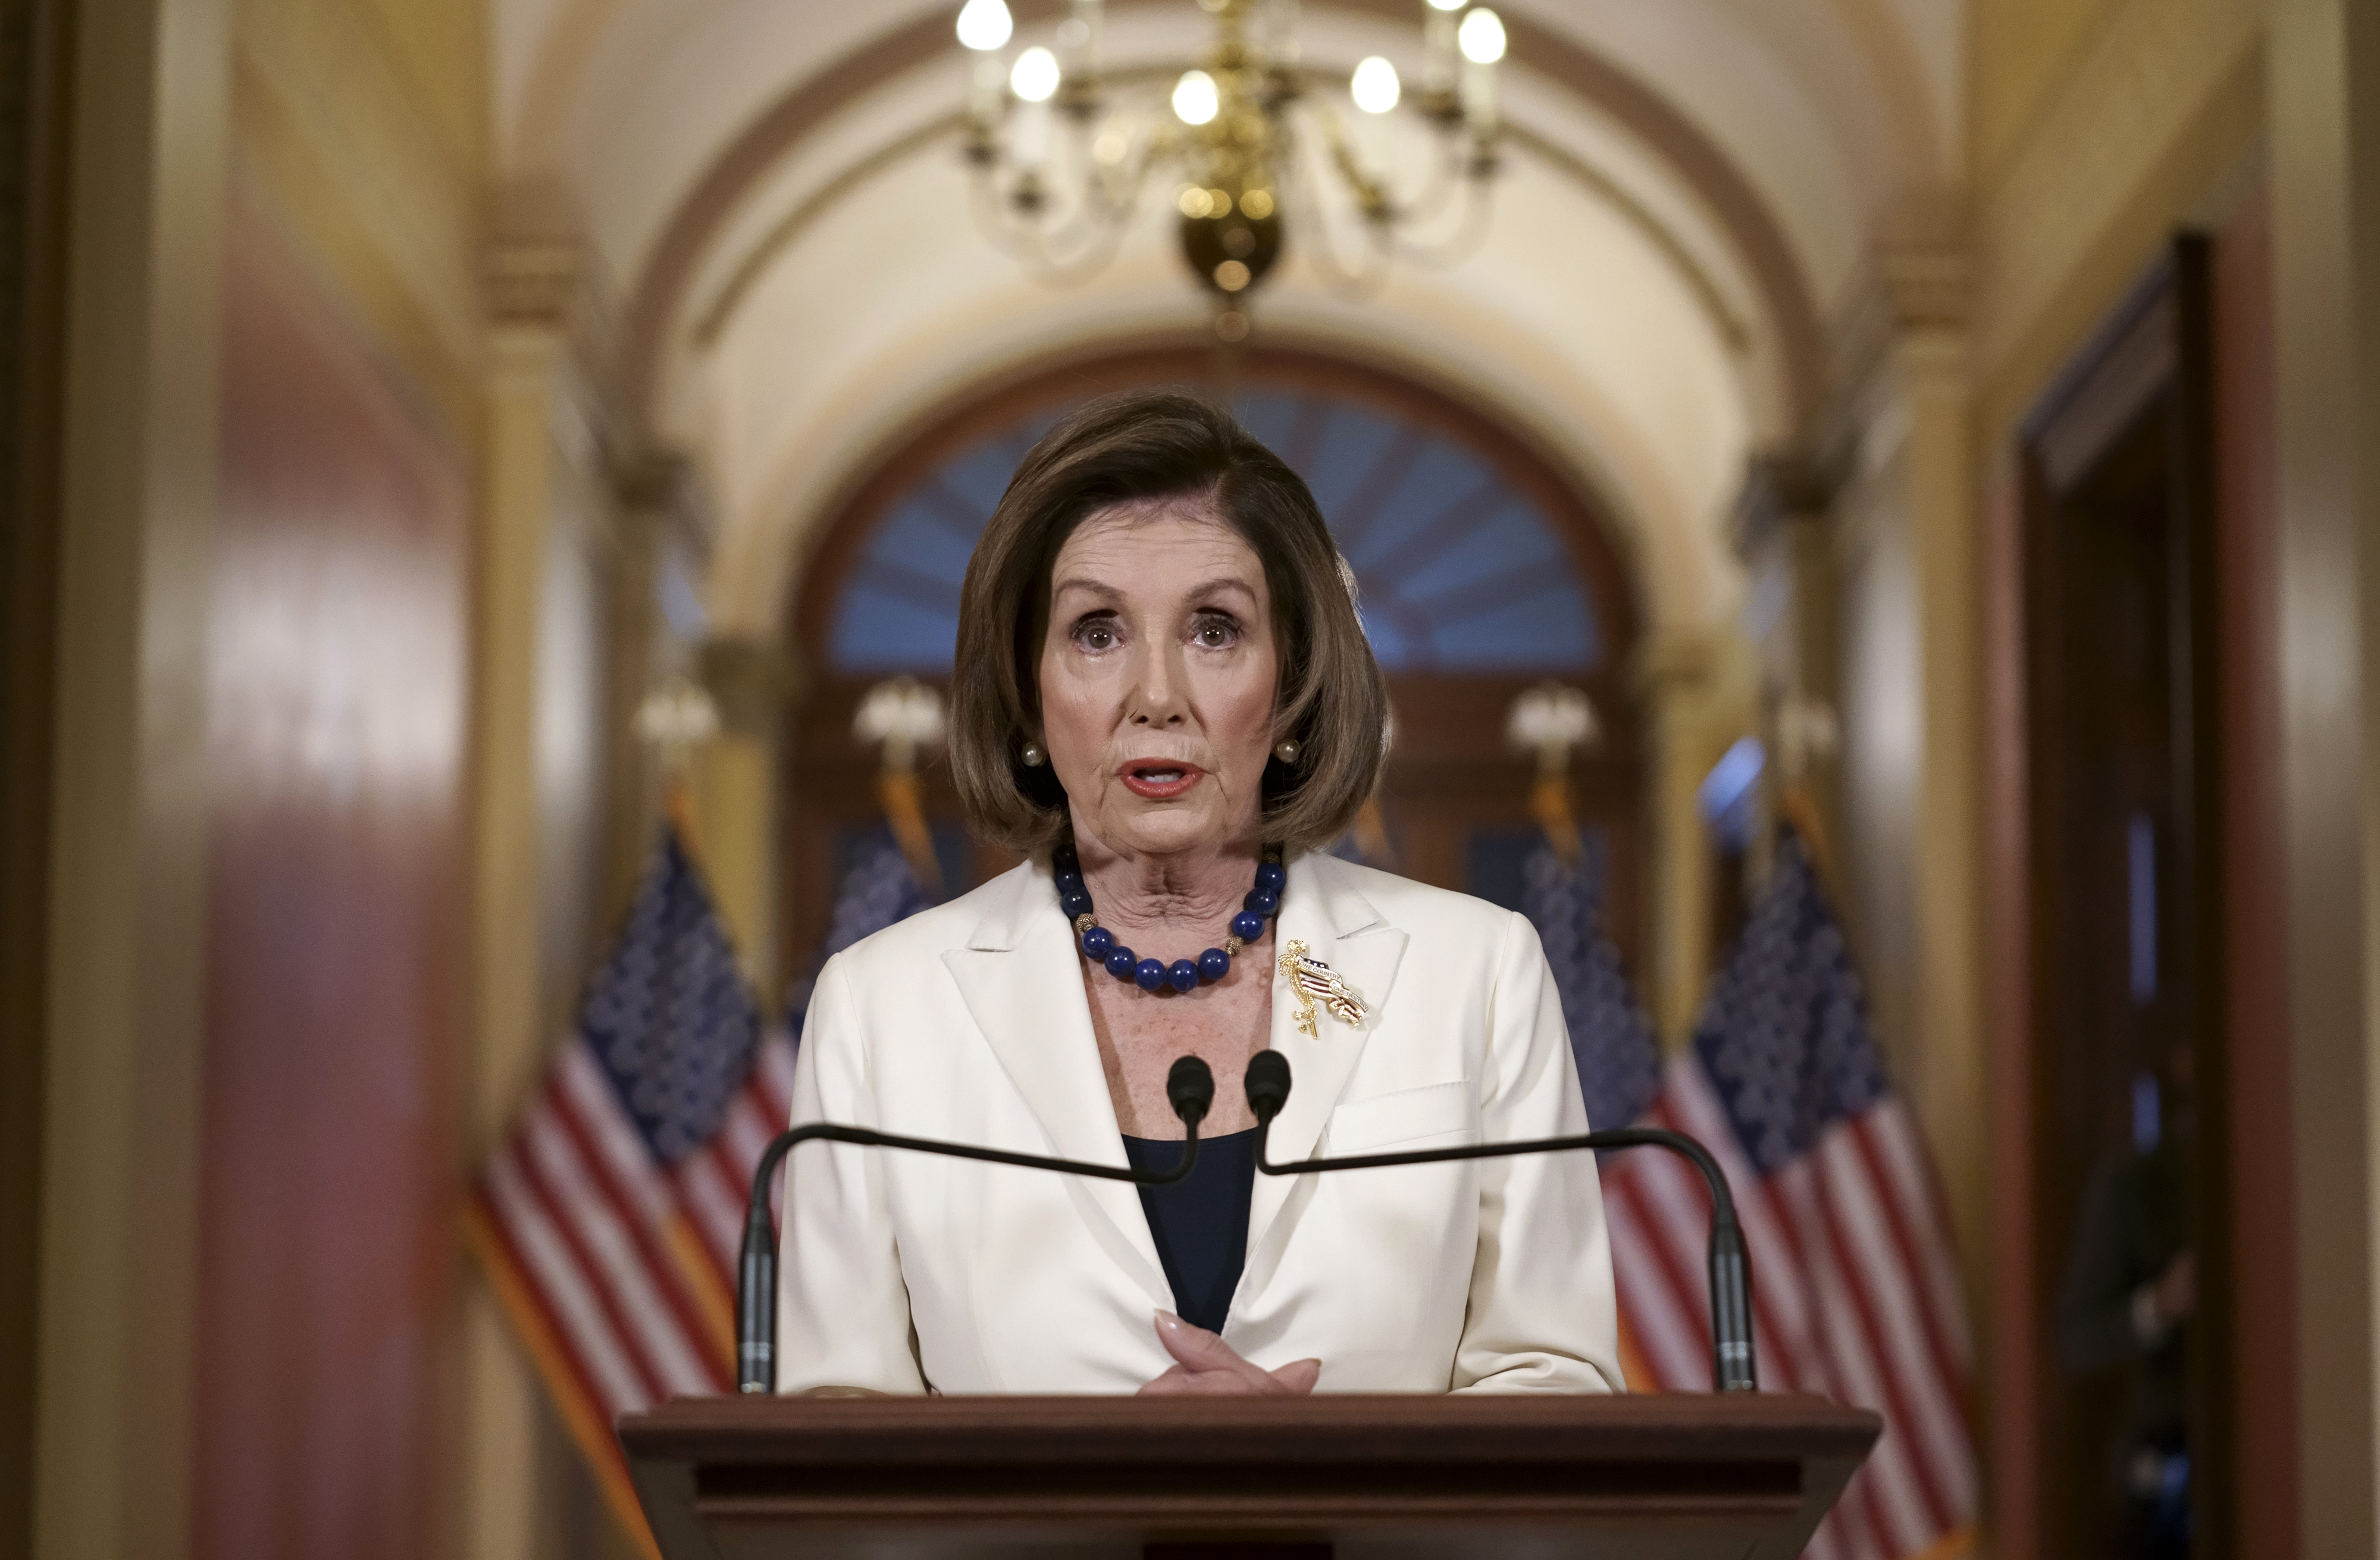 Speaker of the House Nancy Pelosi, D-Calif., announced that she is asking Democrats to move forward with drafting articles of impeachment against President Donald Trump at the U.S. Capitol in Washington, Thursday, Dec. 5, 2019.